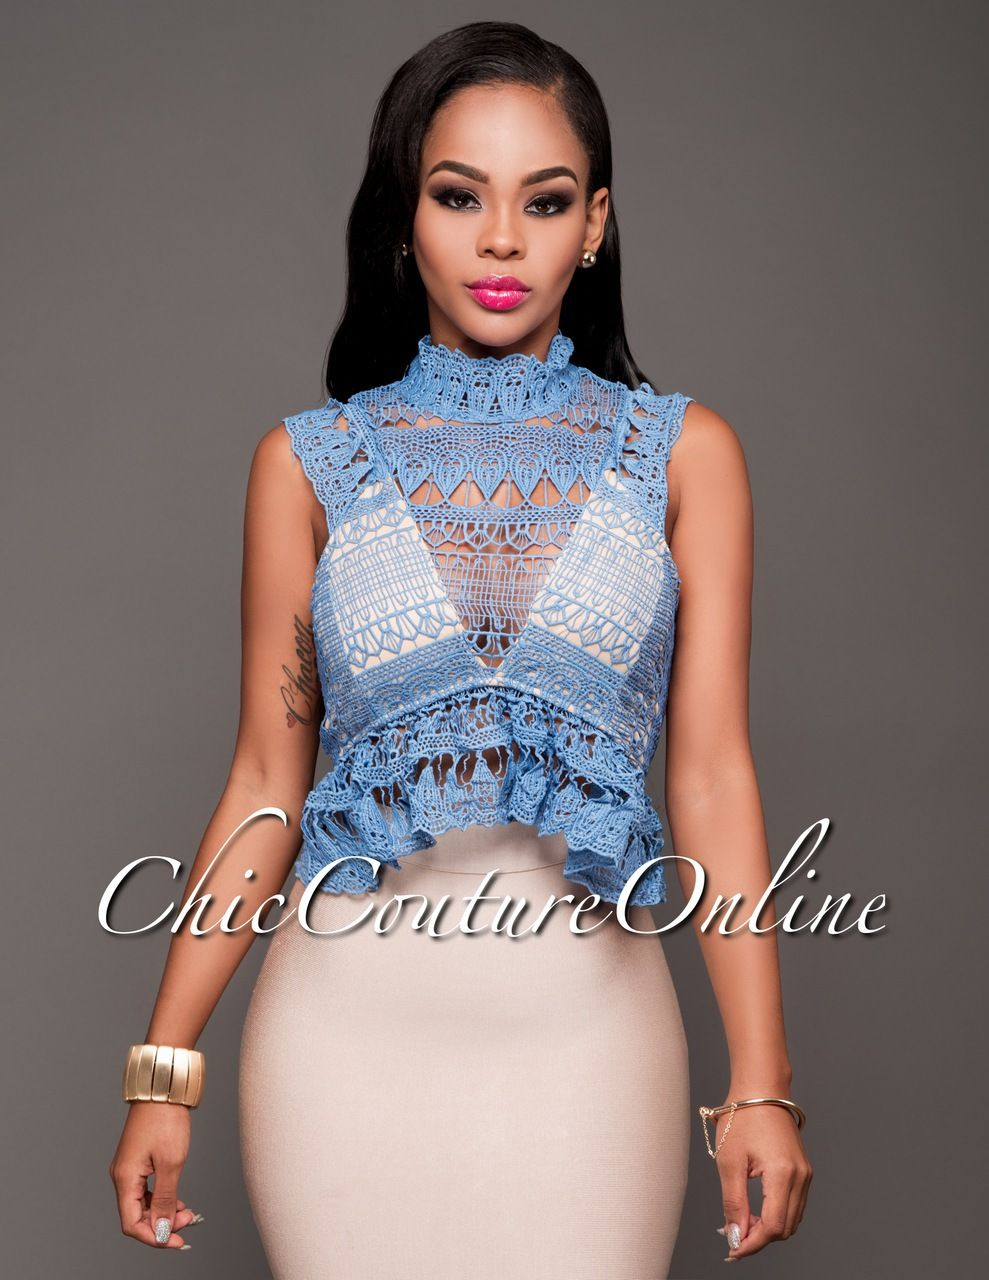 Chic Couture Online - Chicana Blue Eyelet Nude Luxe Top.(http://www.chiccoutureonline.com/chicana-blue-eyelet-nude-luxe-top/)